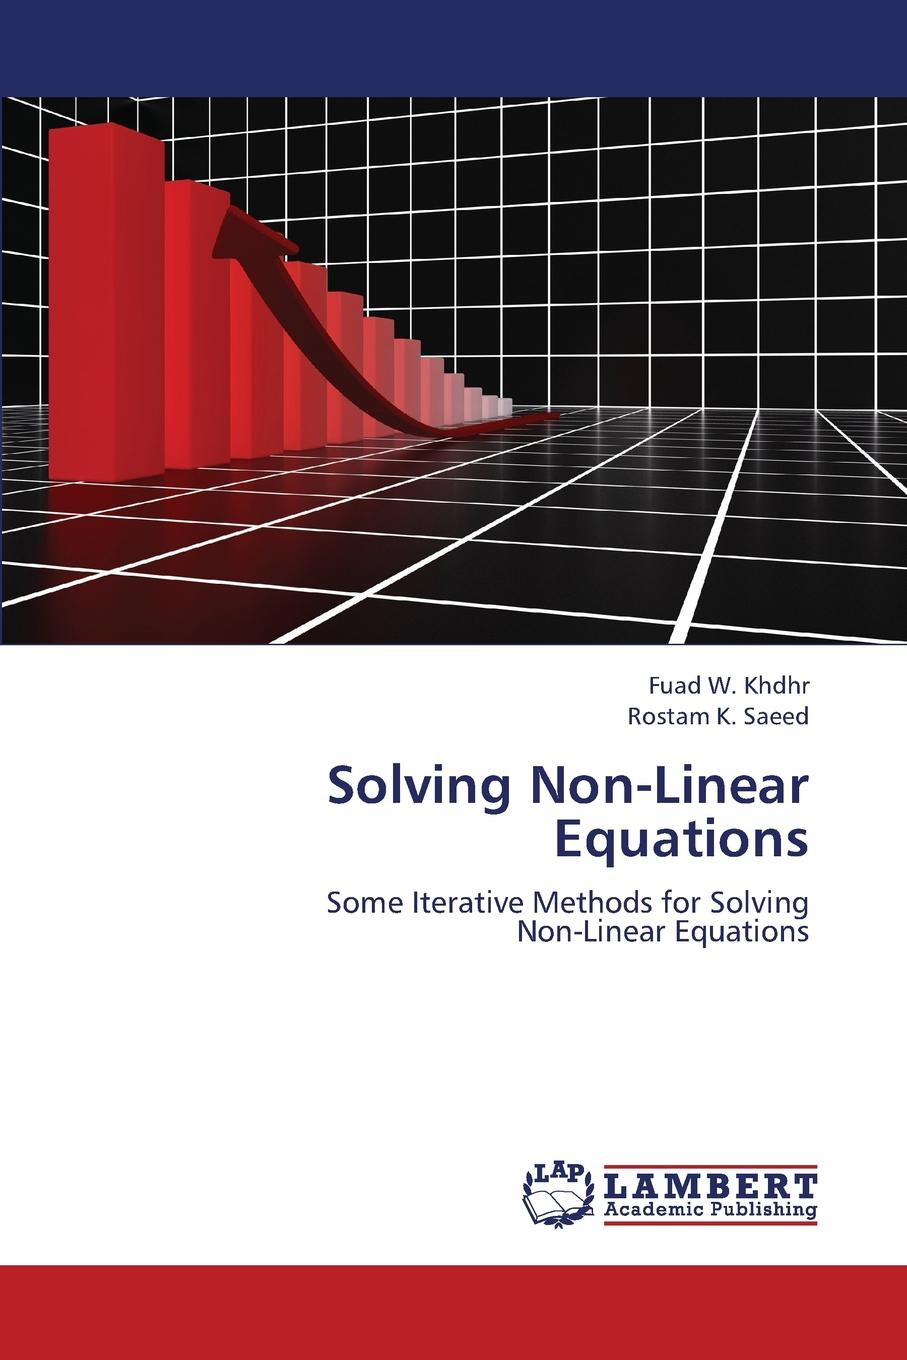 W. Khdhr Fuad, K. Saeed Rostam Solving Non-Linear Equations цена